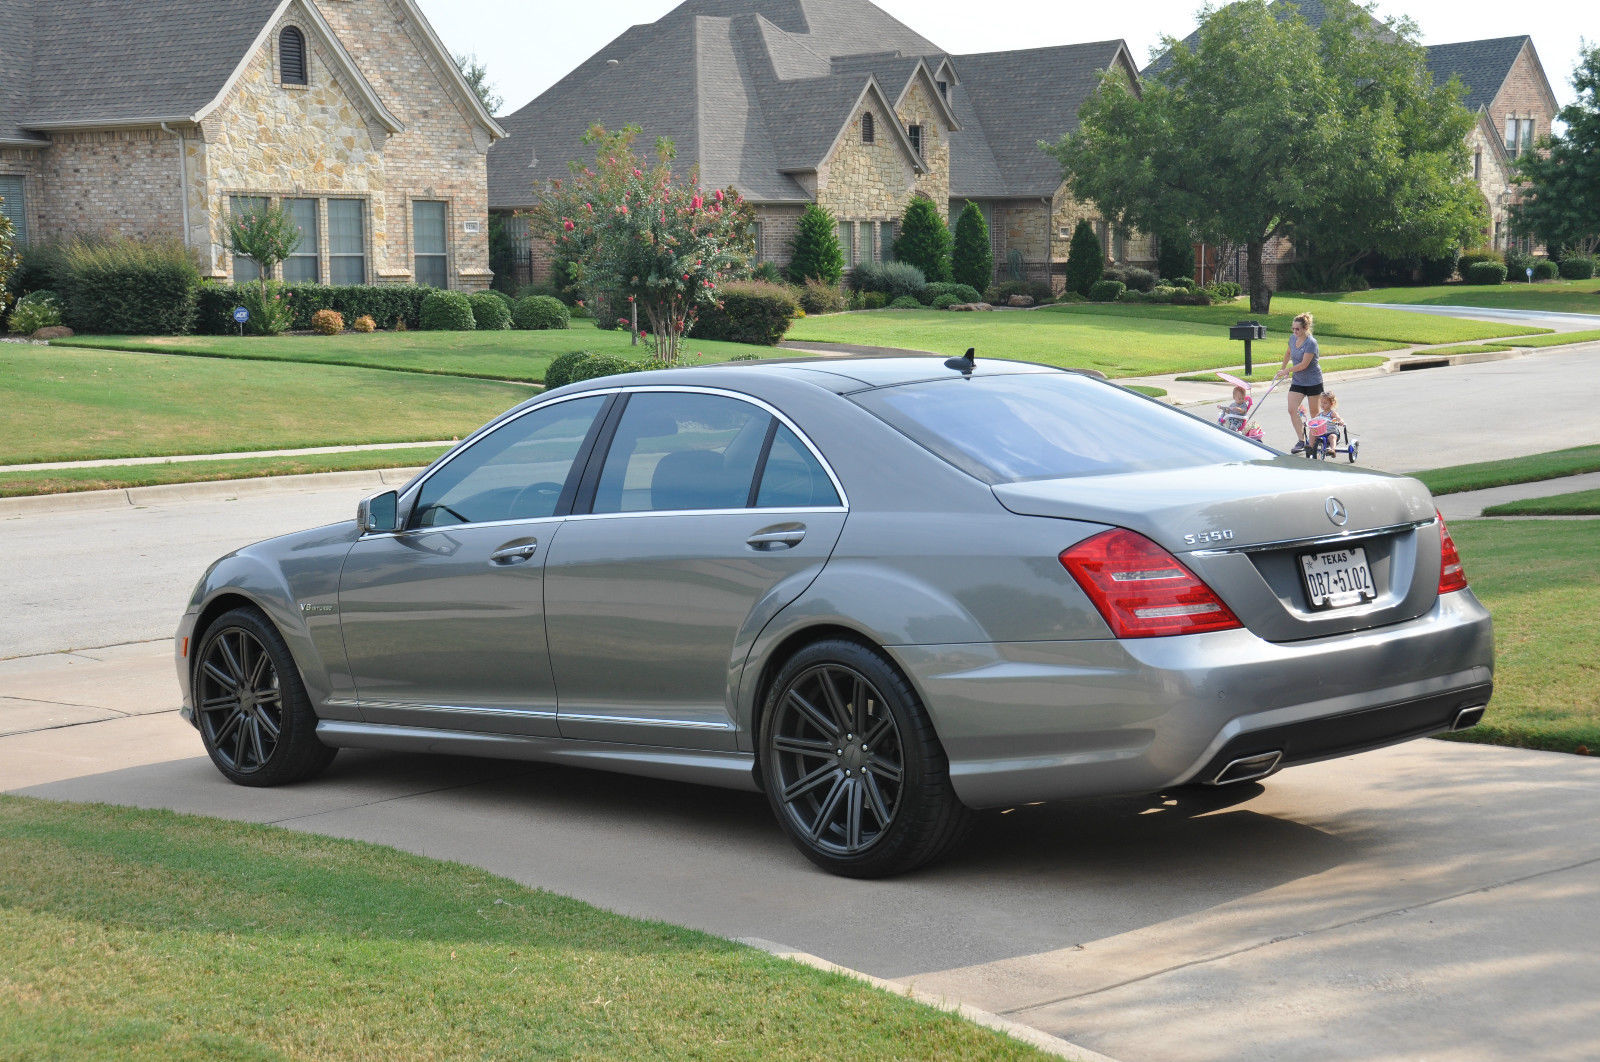 Mercedes benz w221 s550 on 20 vossen wheels benztuning for Mercedes benz s550 rims